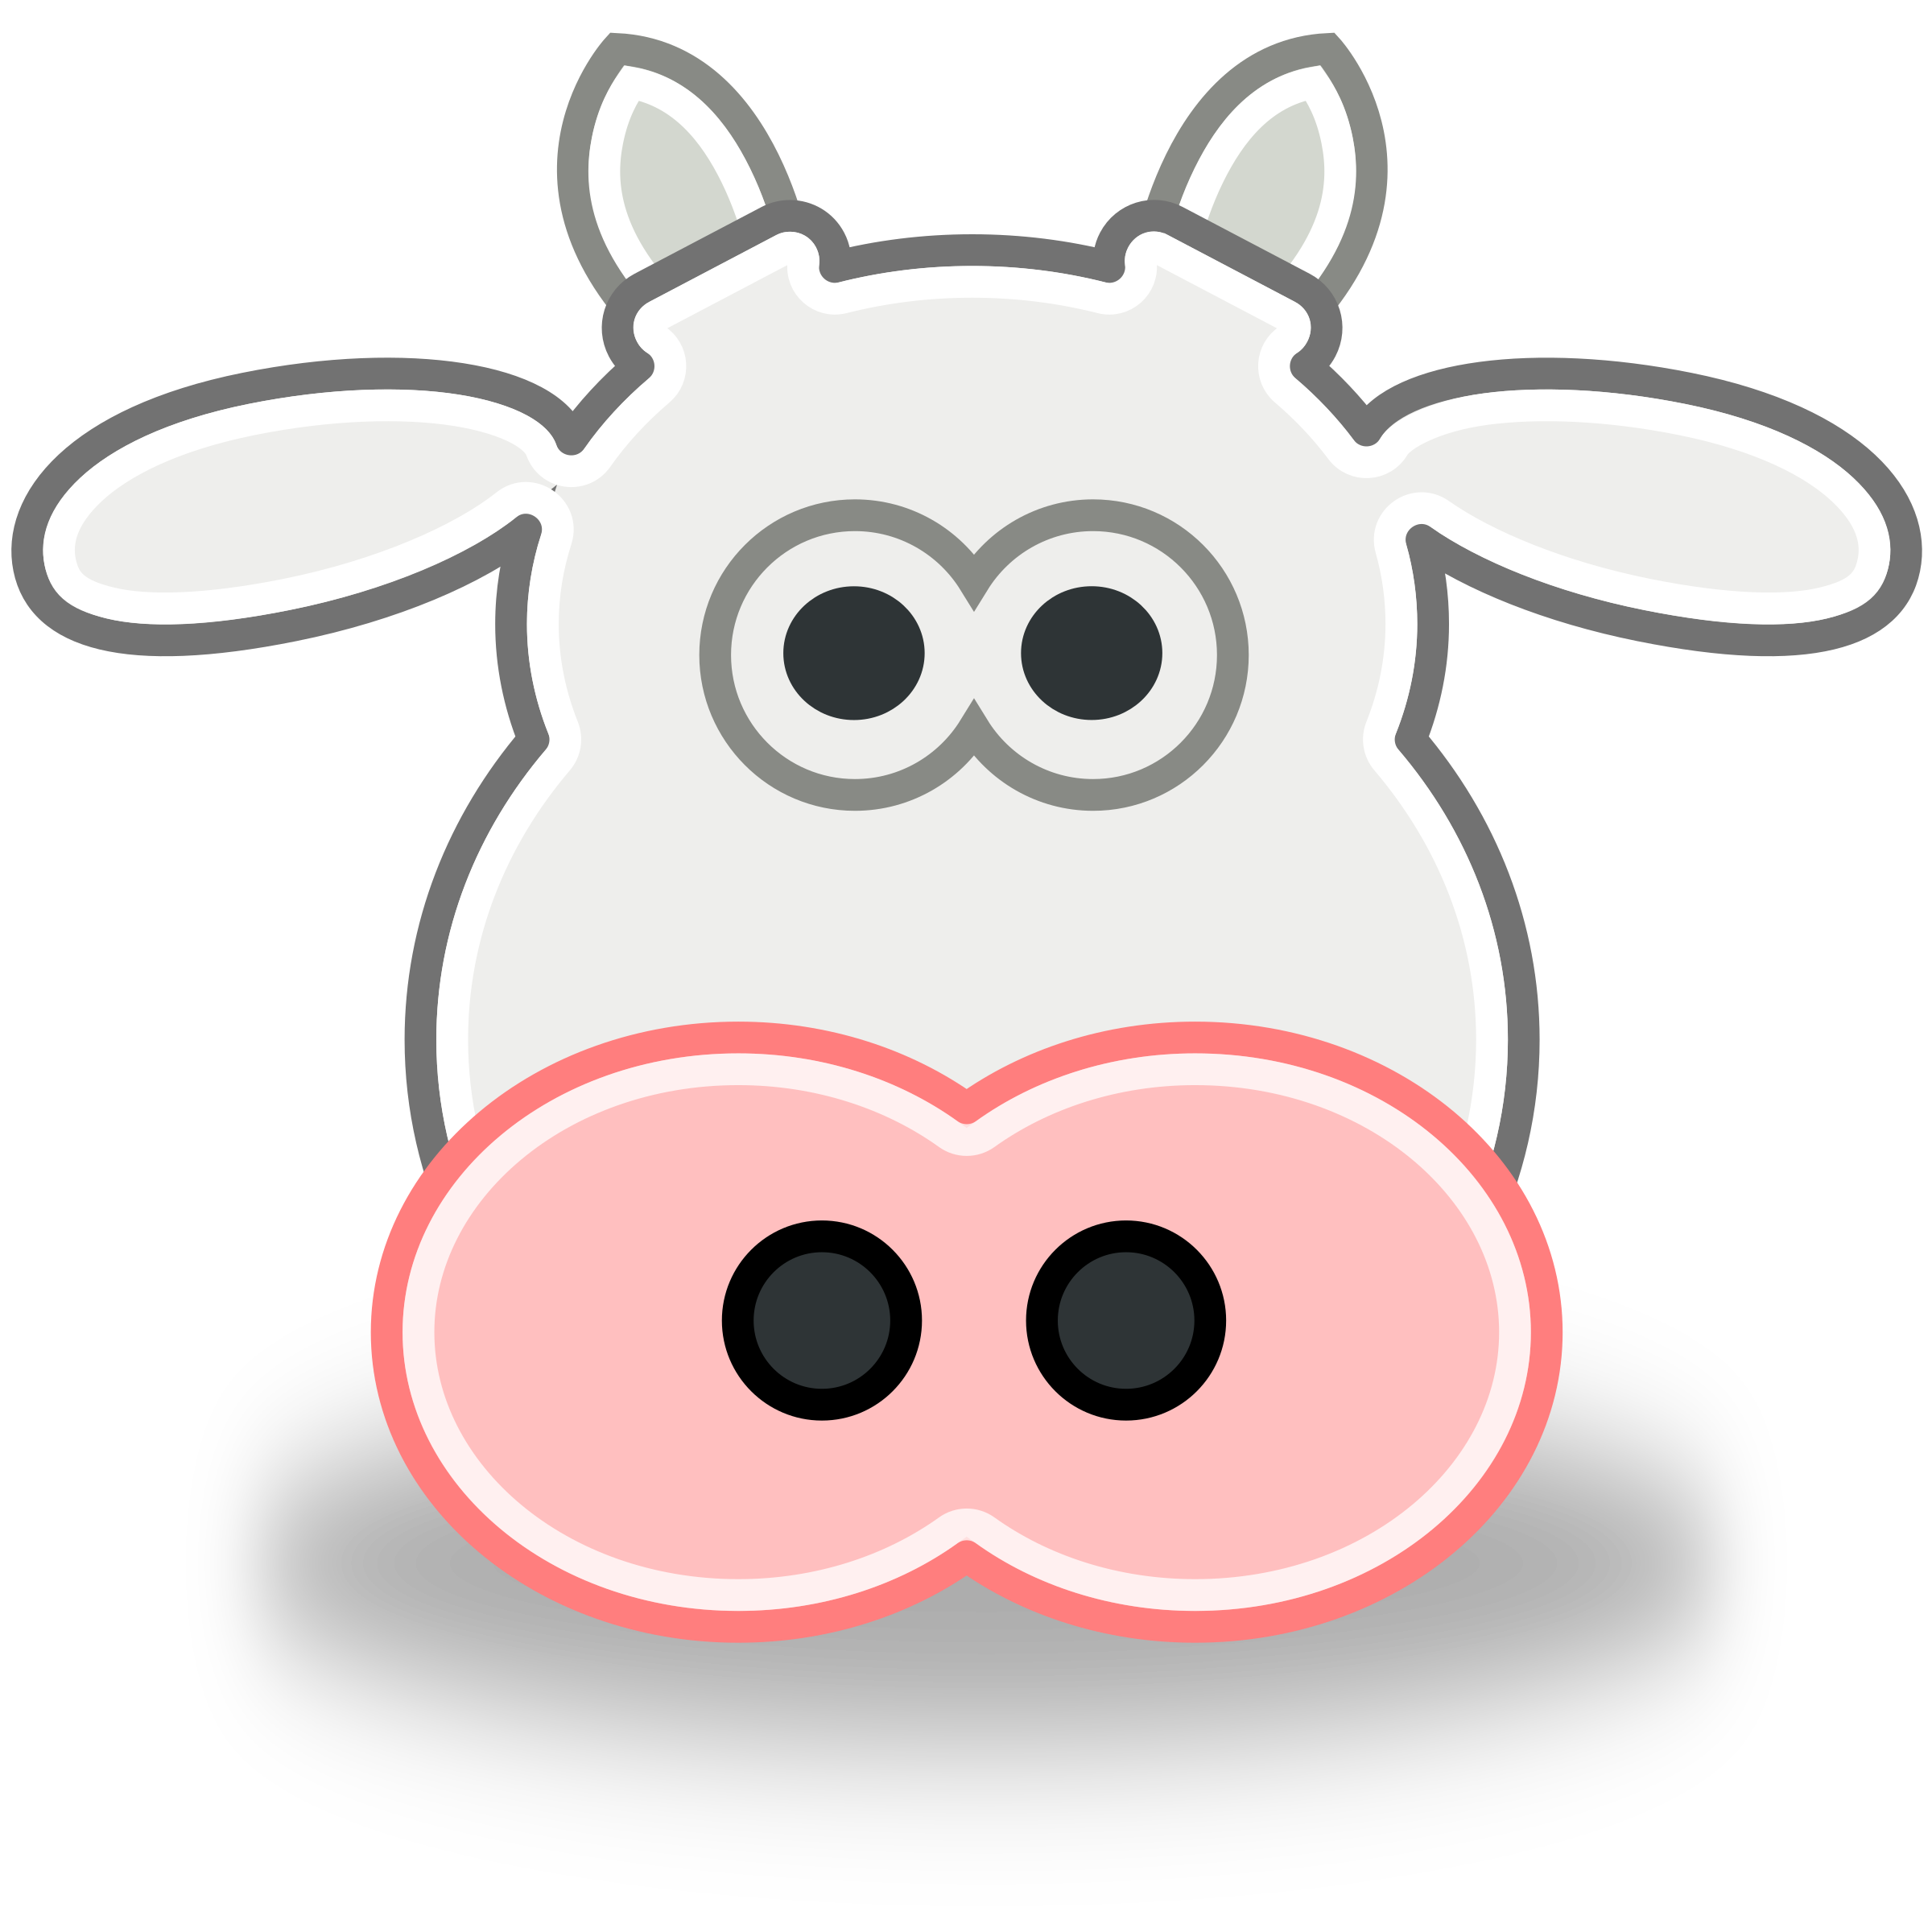 BIG IMAGE (PNG) - PNG Cow Head